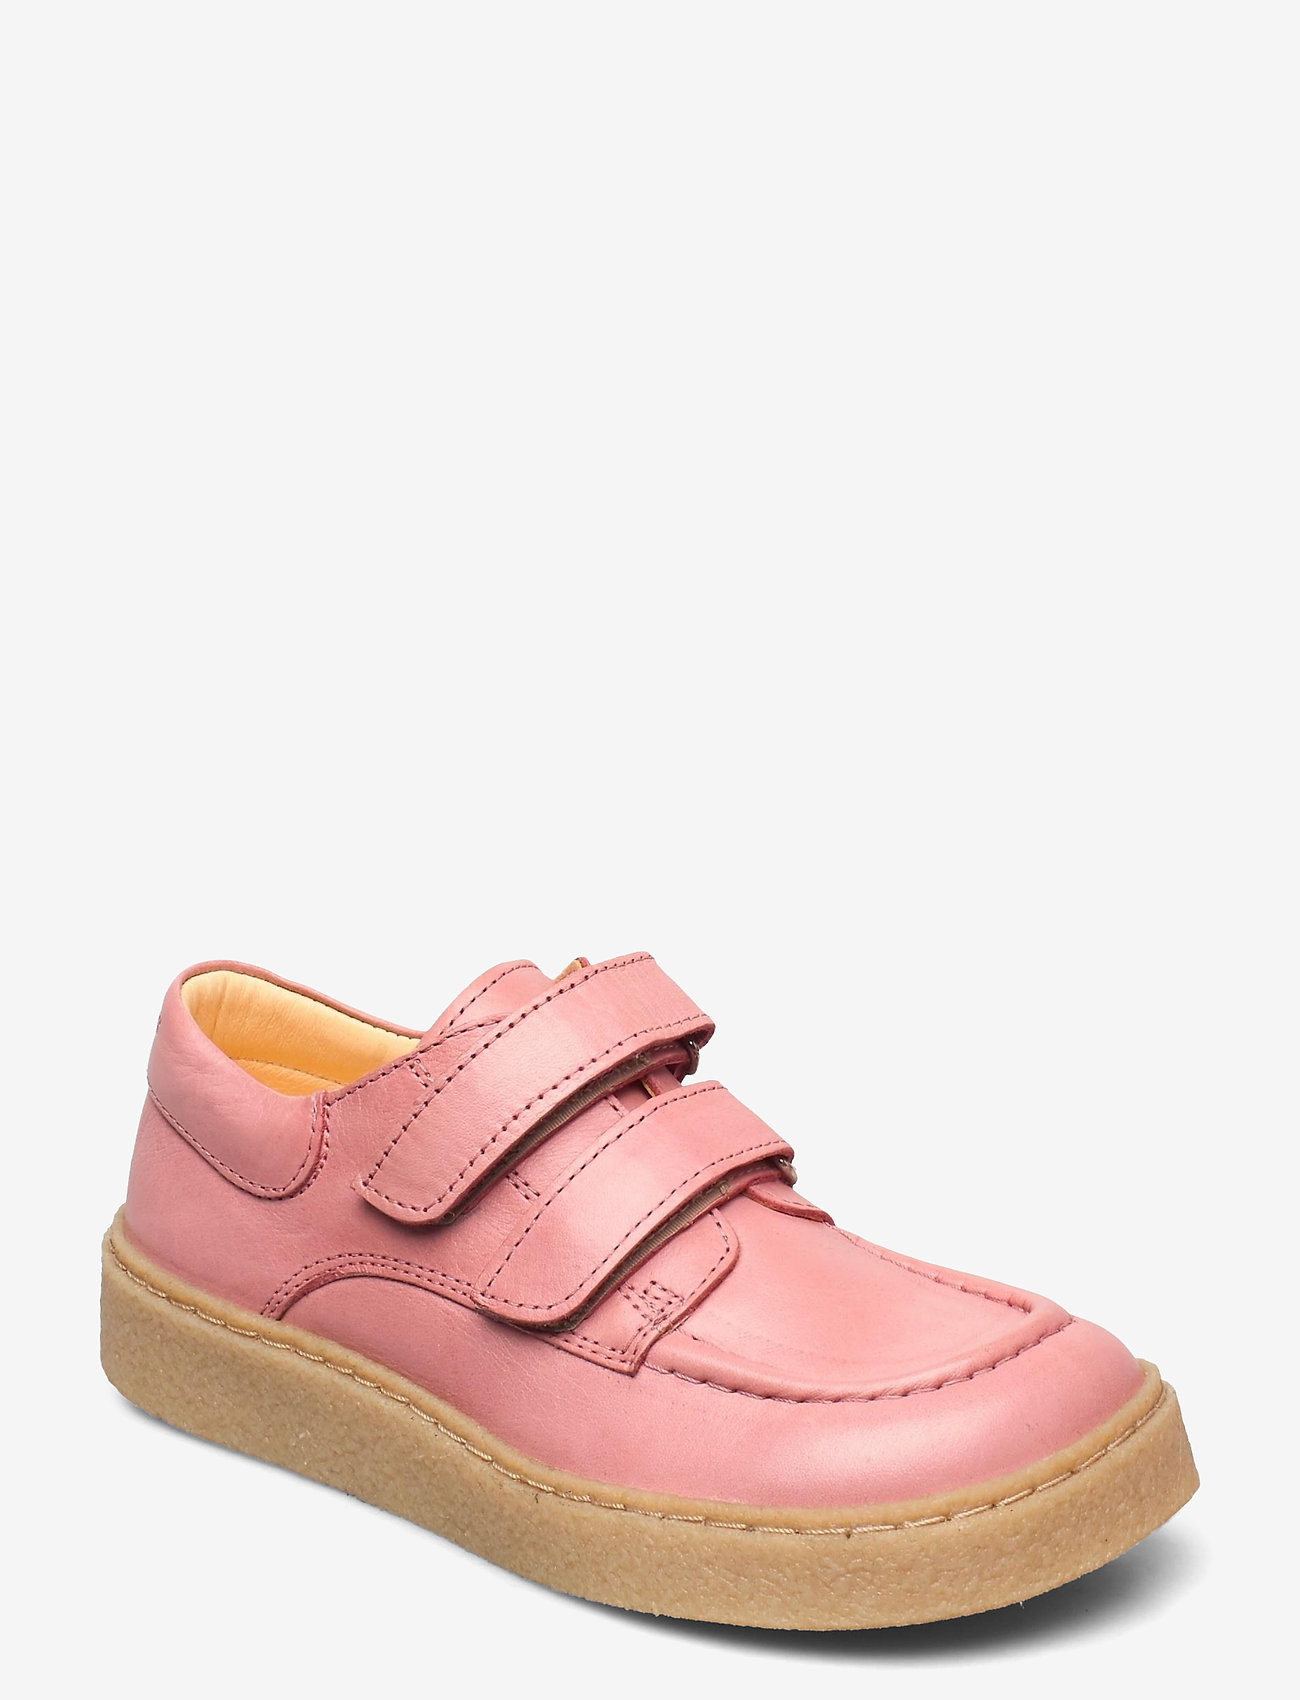 ANGULUS - Shoes - flat - with velcro - låga sneakers - 1542 rose - 0